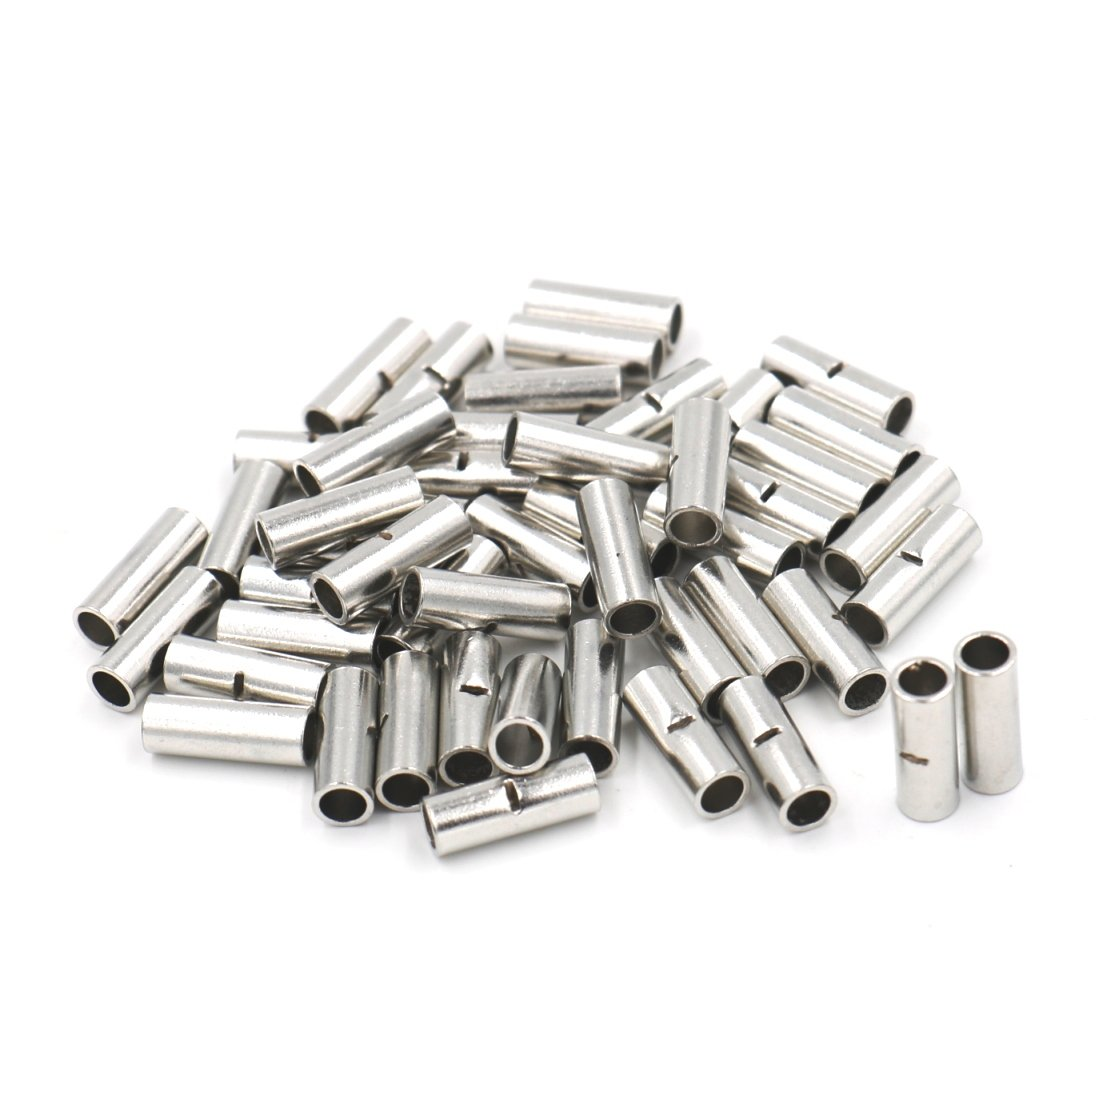 WeiMeet 300pcs Non-Insulated Butt Connectors 22-18AWG 16-14AWG 12-10AWG BM Series Non-Insulated Tinned Copper Wire Ferrule Cable Crimp Terminal Kit for Electrical Splice DIY